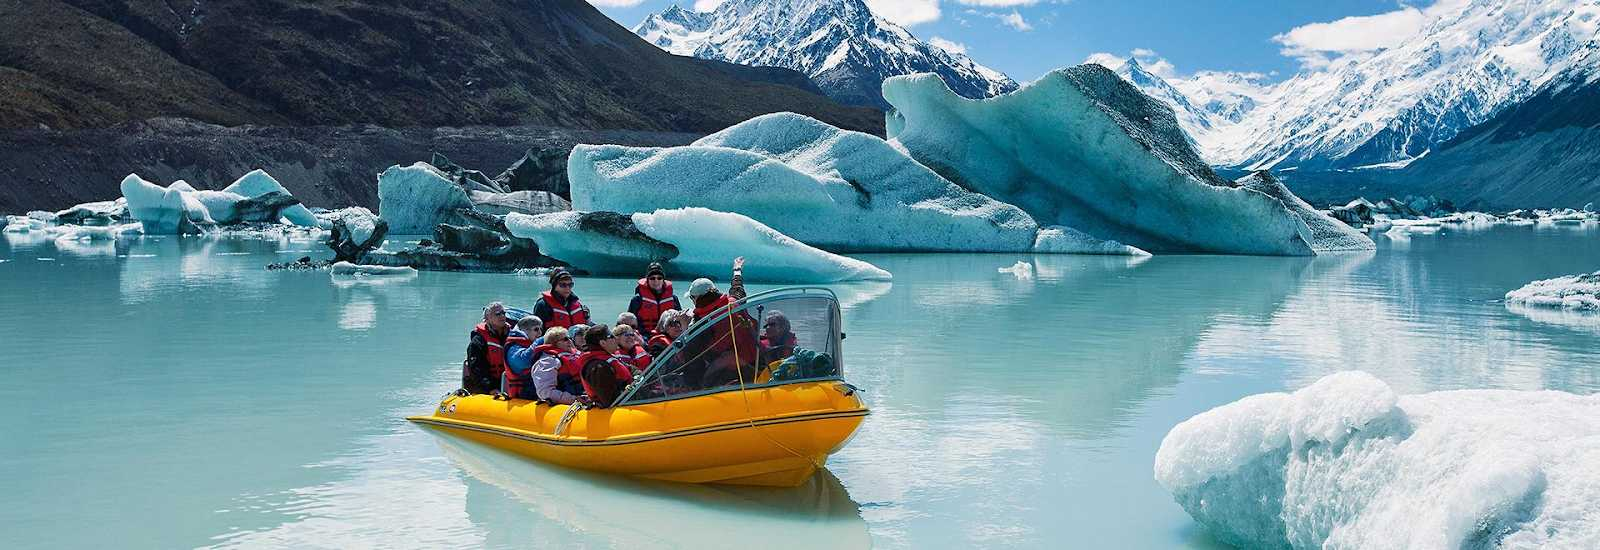 boat ride on an icy lake of mount cook national park